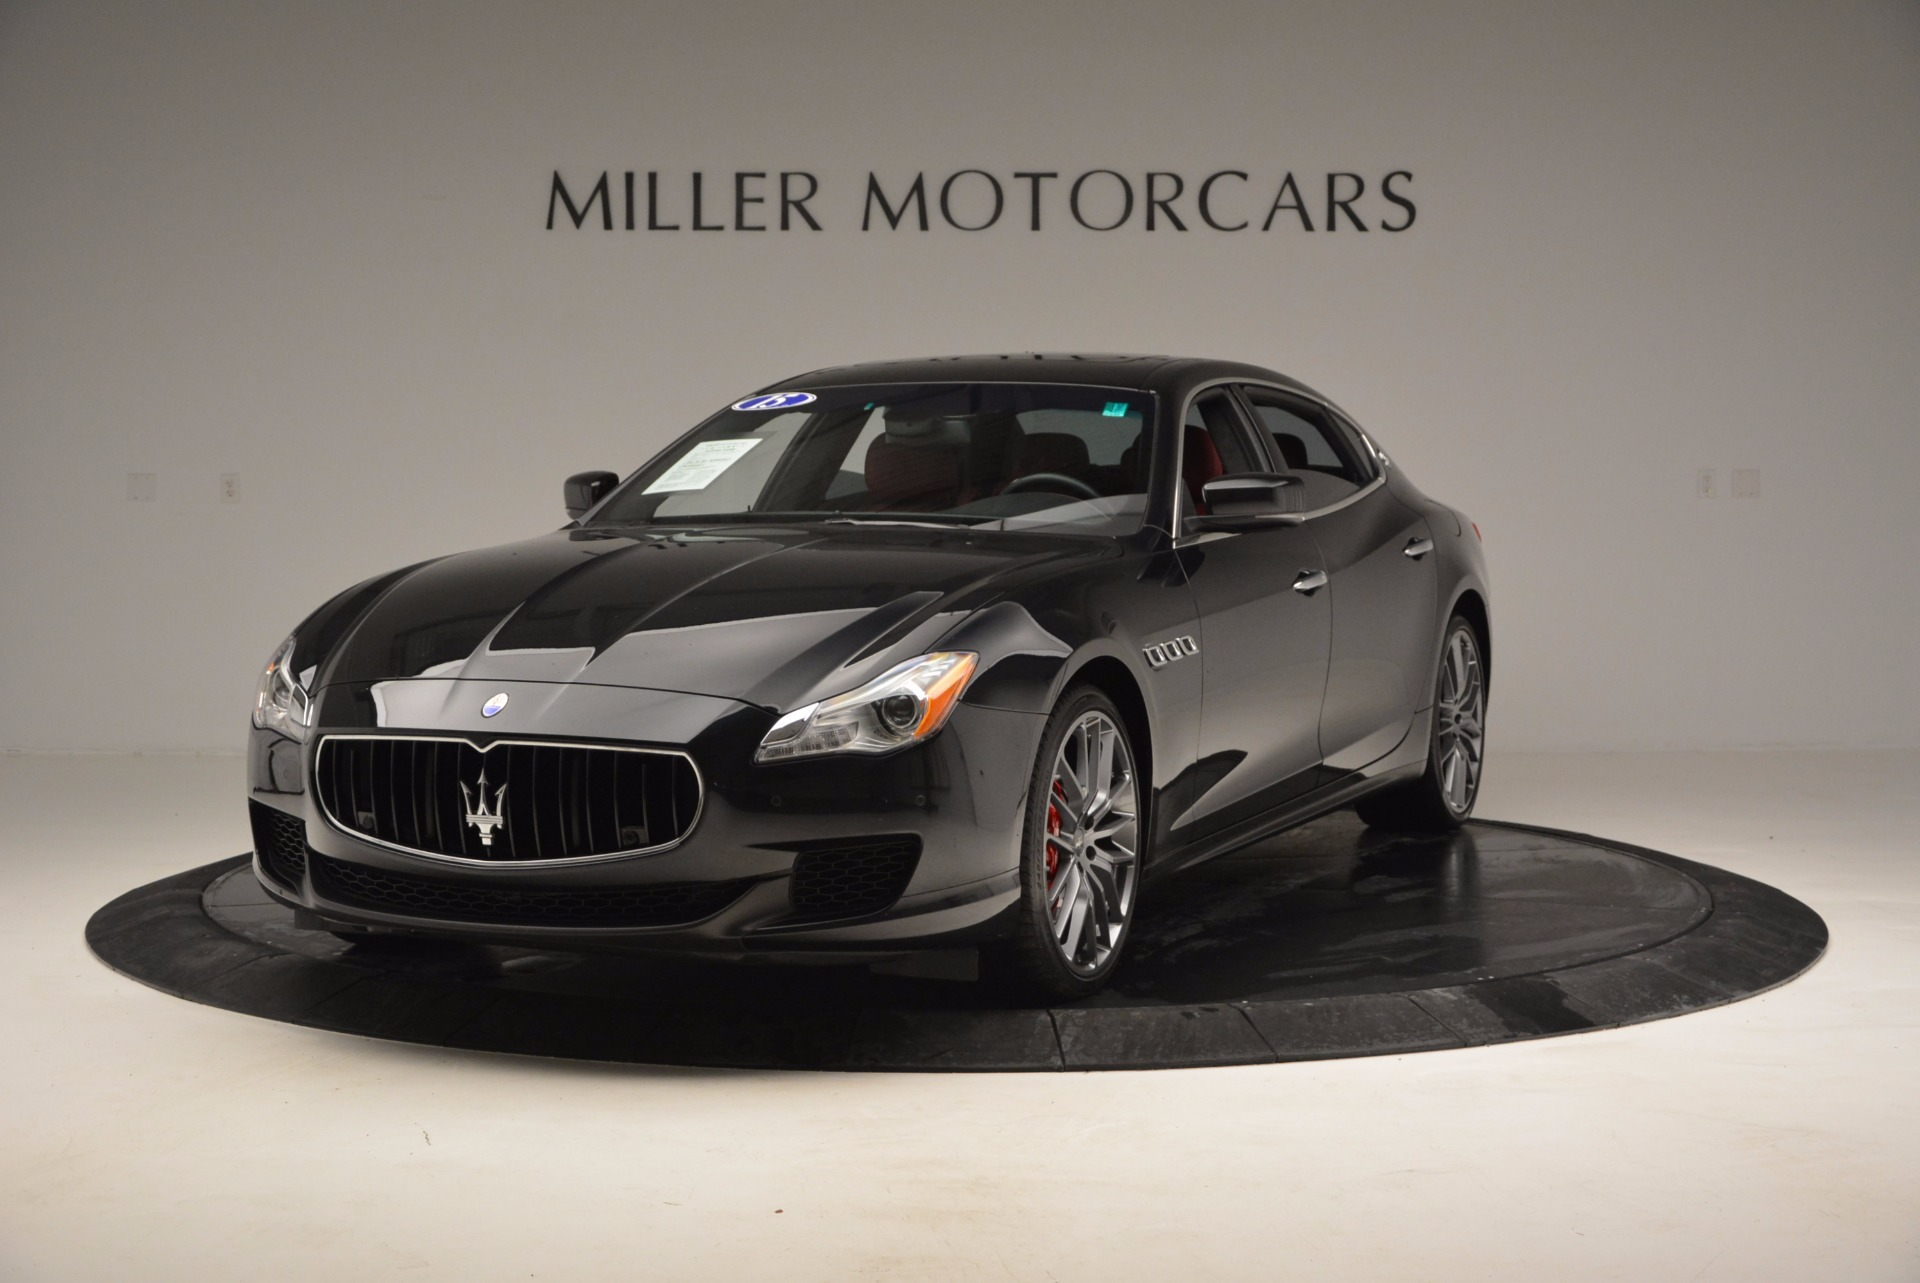 Used 2015 Maserati Quattroporte S Q4 for sale Sold at Alfa Romeo of Westport in Westport CT 06880 1